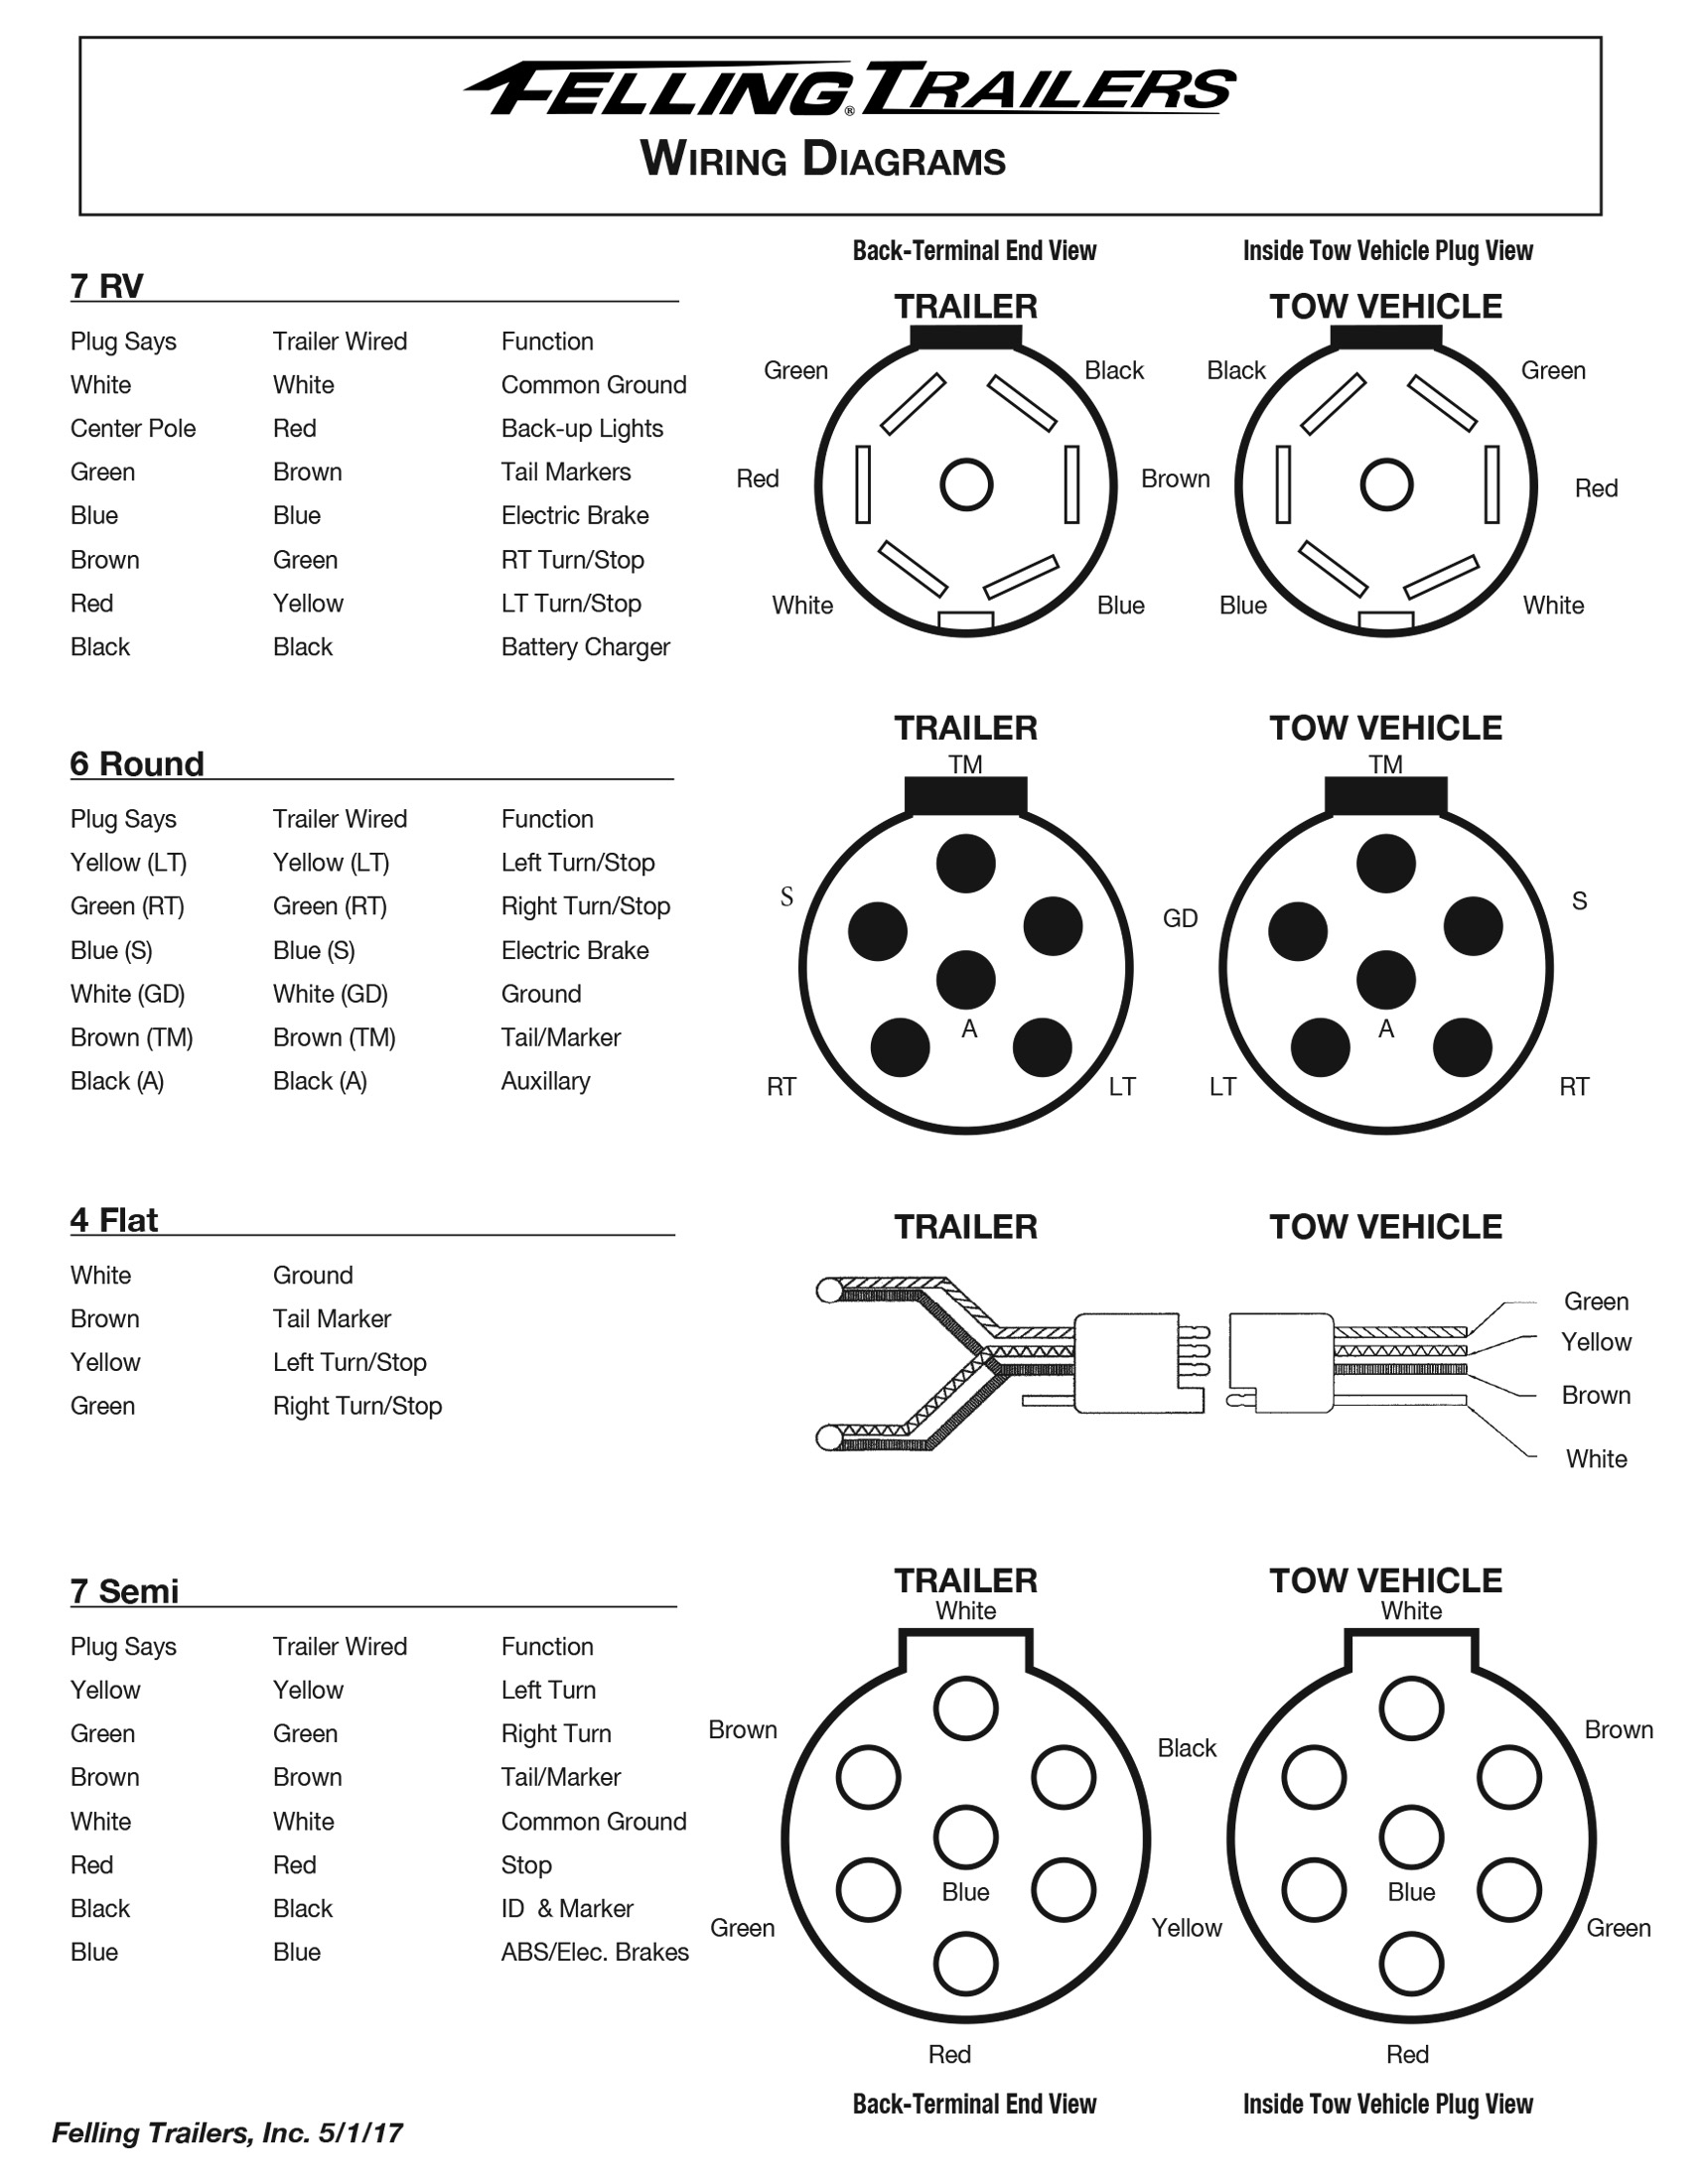 Service- Felling Trailers Wiring Diagrams, Wheel Toque - Wiring Diagram For 7 Pin Trailer Connector